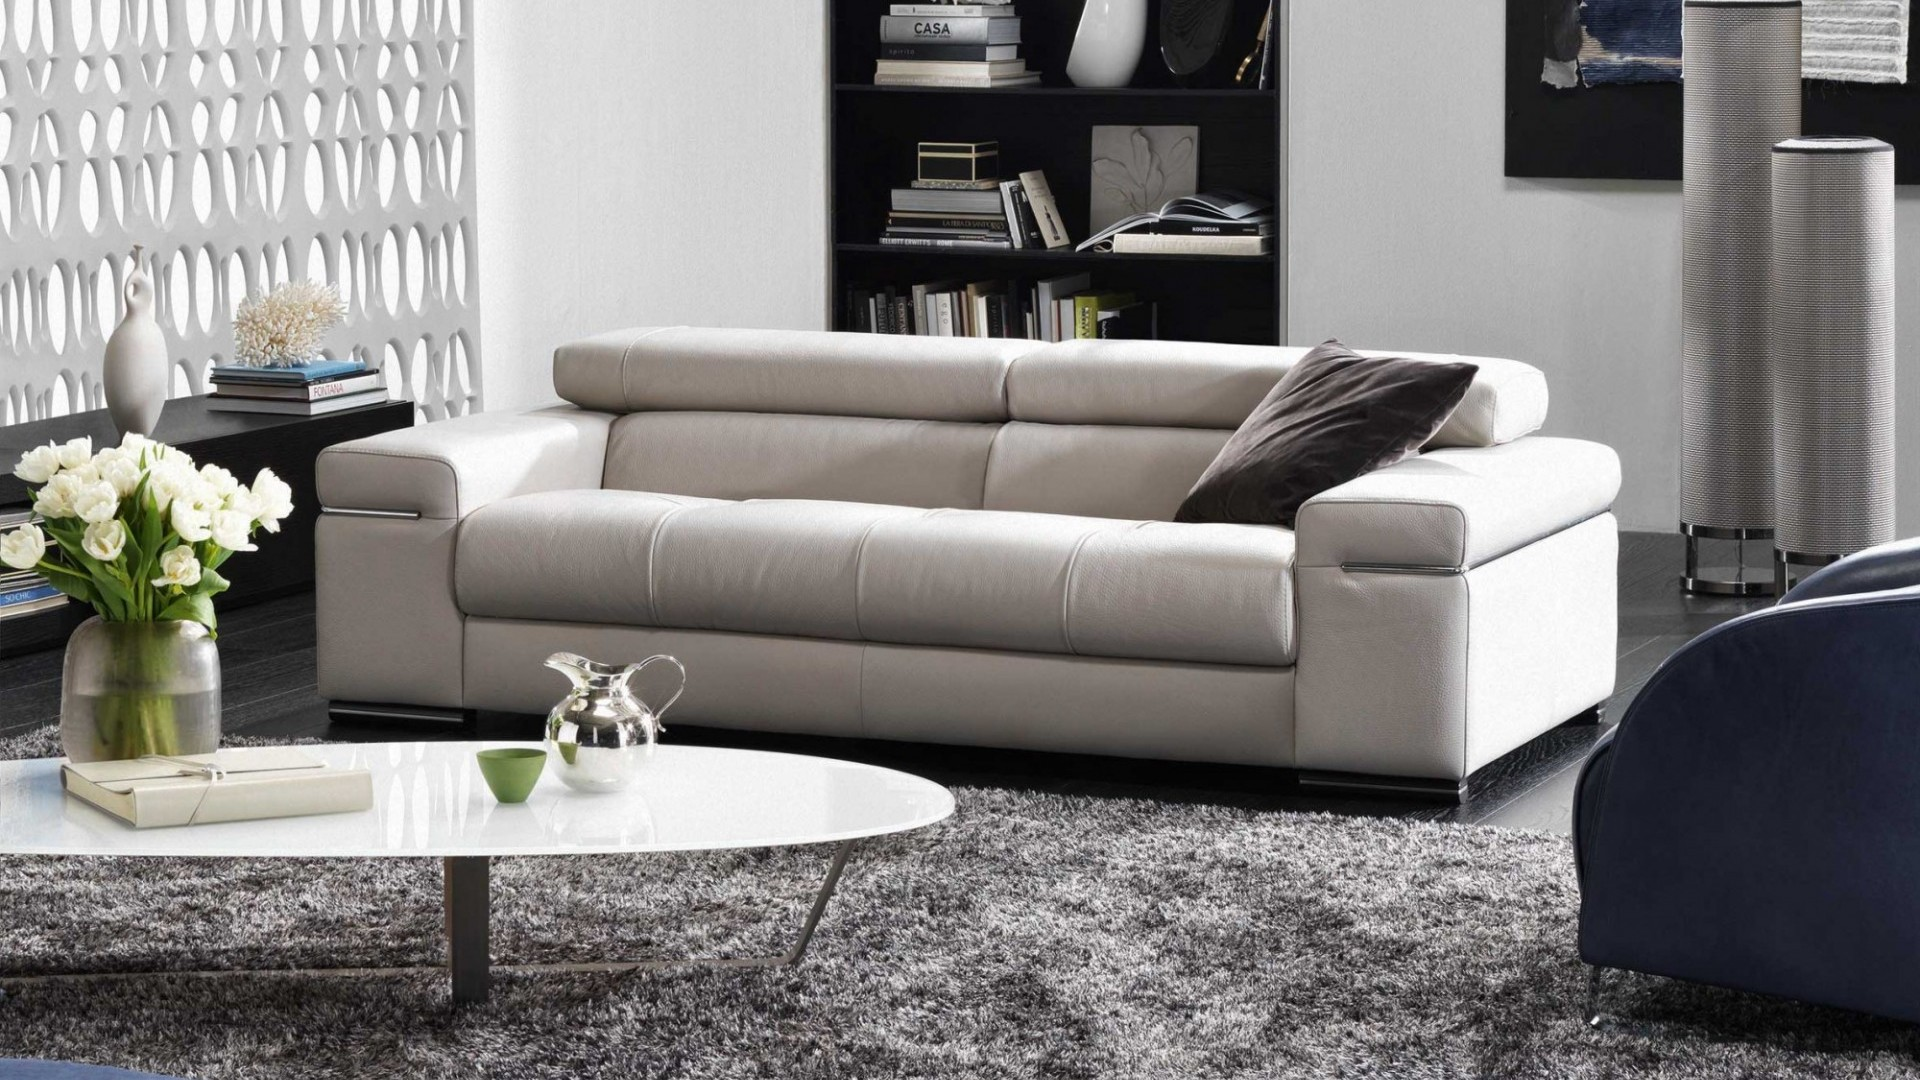 Leather sofa – Avana